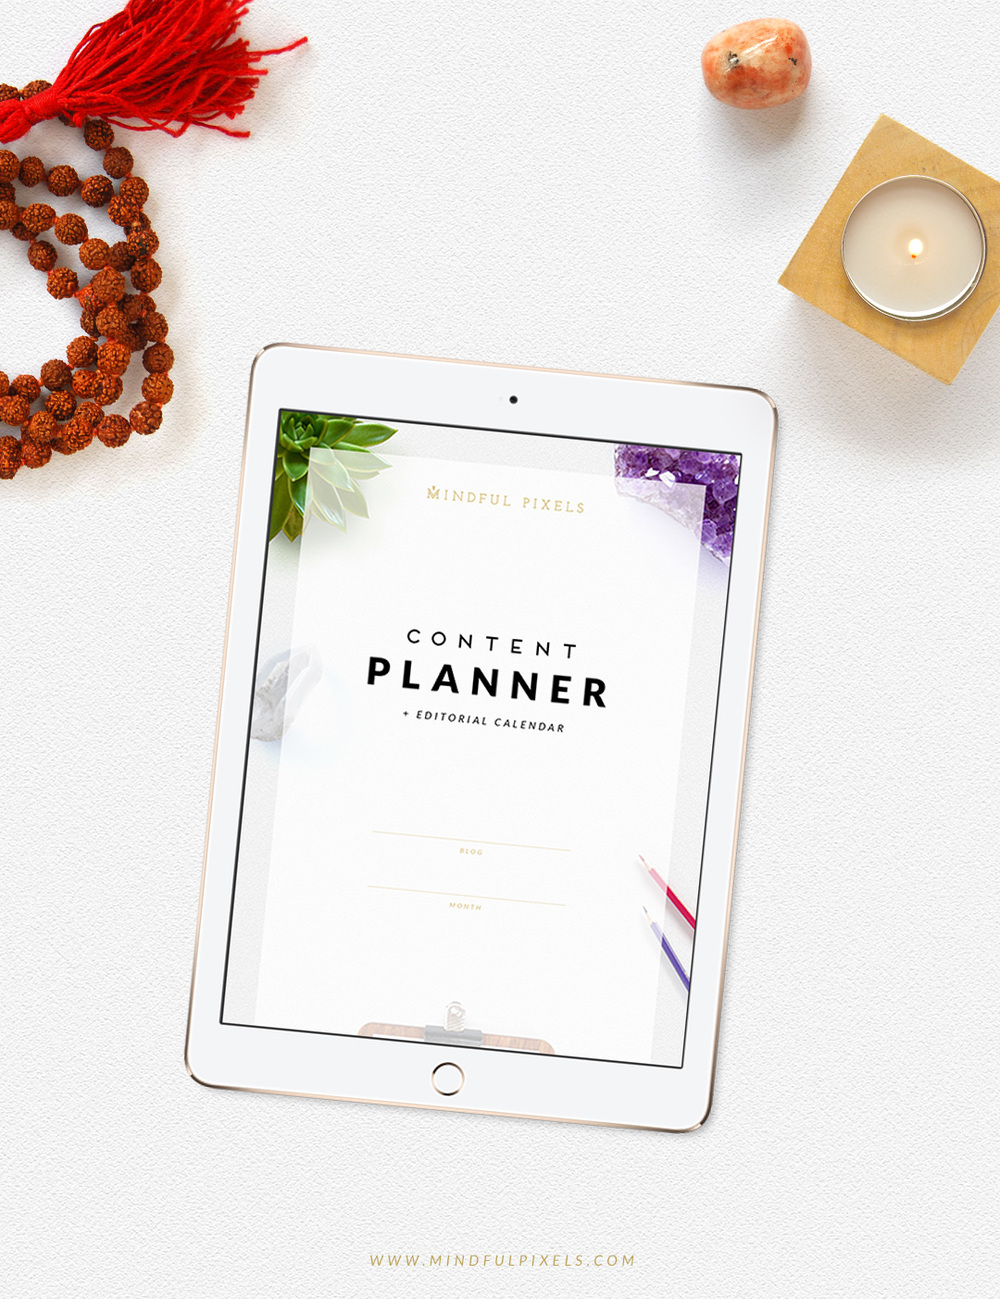 Monthly-Content-Planner-on-iPad.jpg